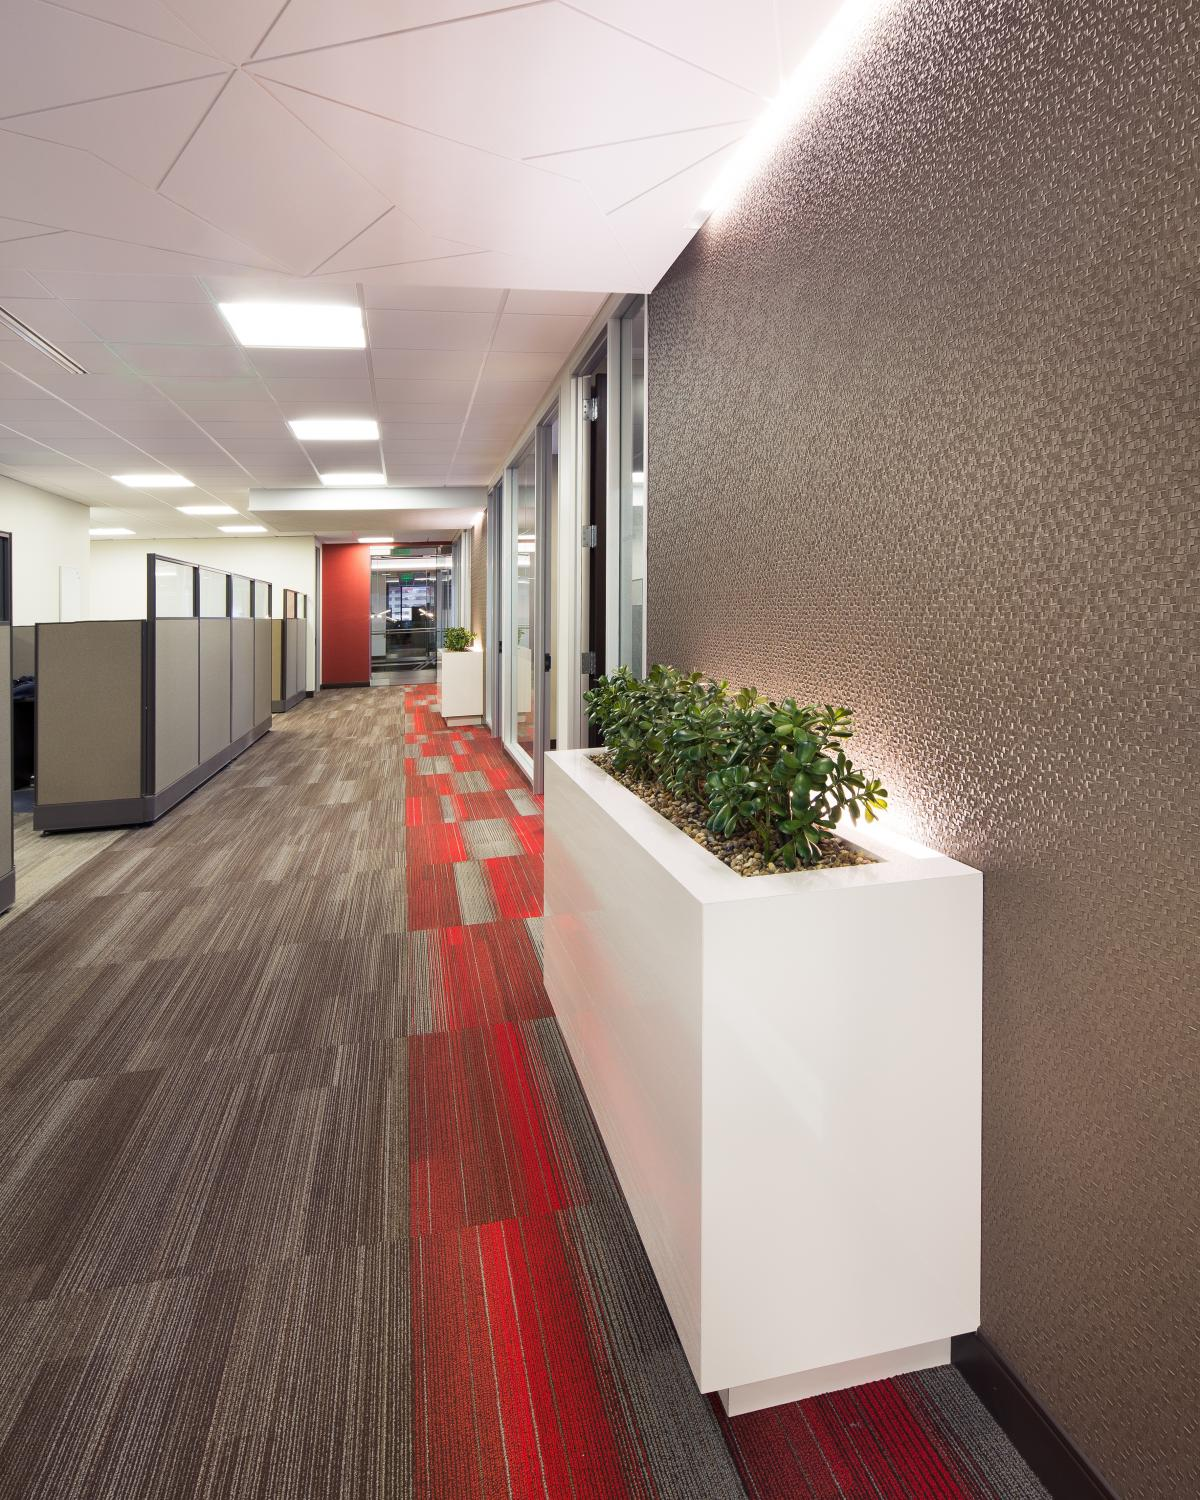 Alden Torch Financial Office Hallway Commercial Construction Denver Colorado